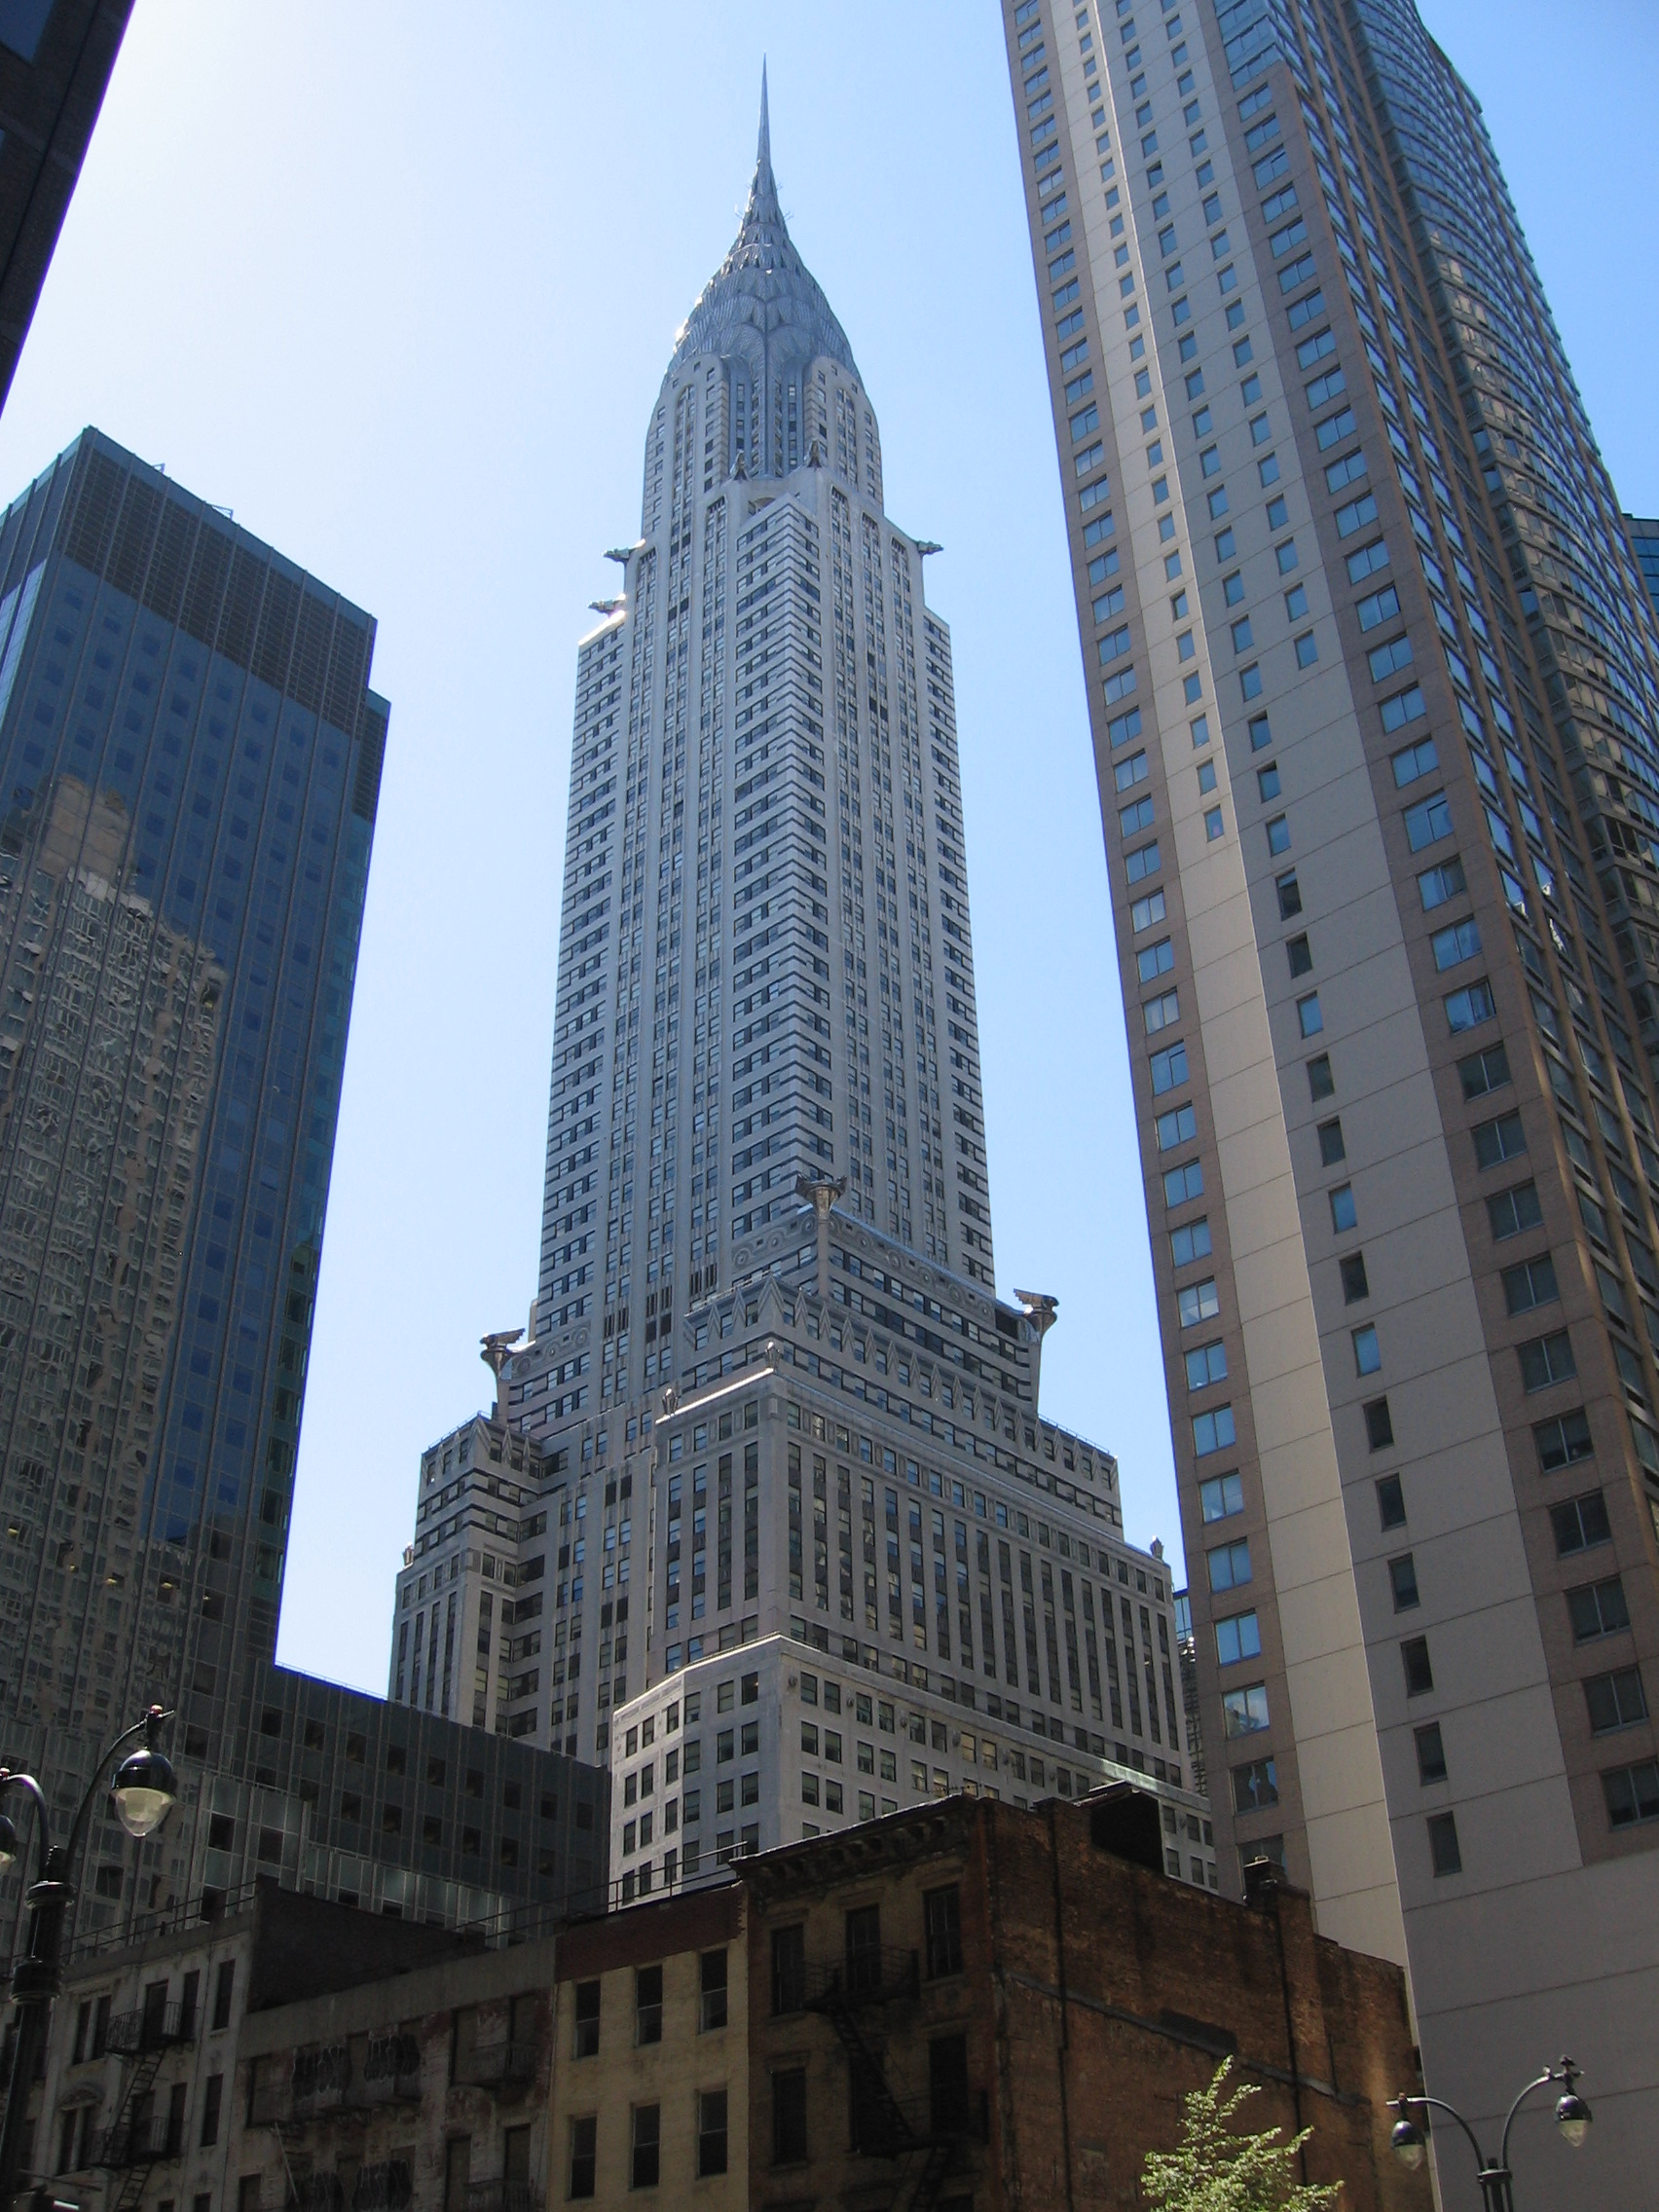 Tour of chrysler building